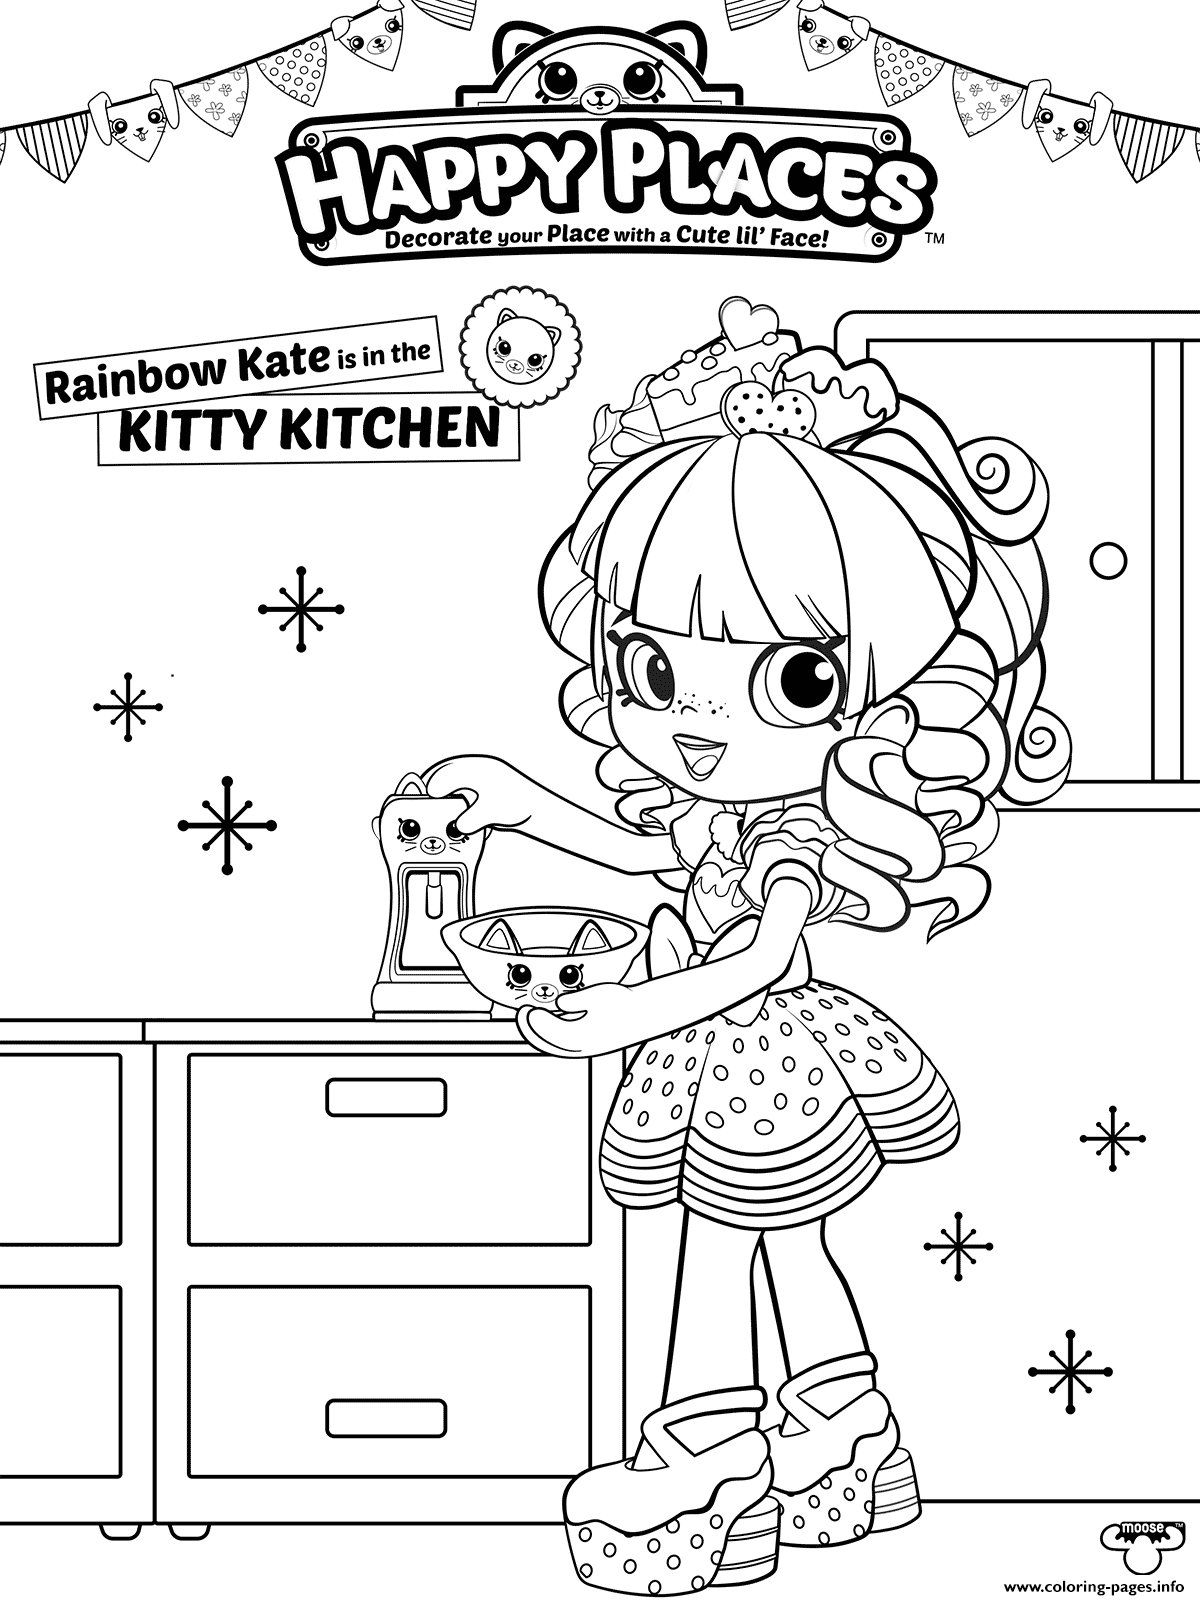 Print Shopkins Happy Places Coloring Pages Bv Pinterest